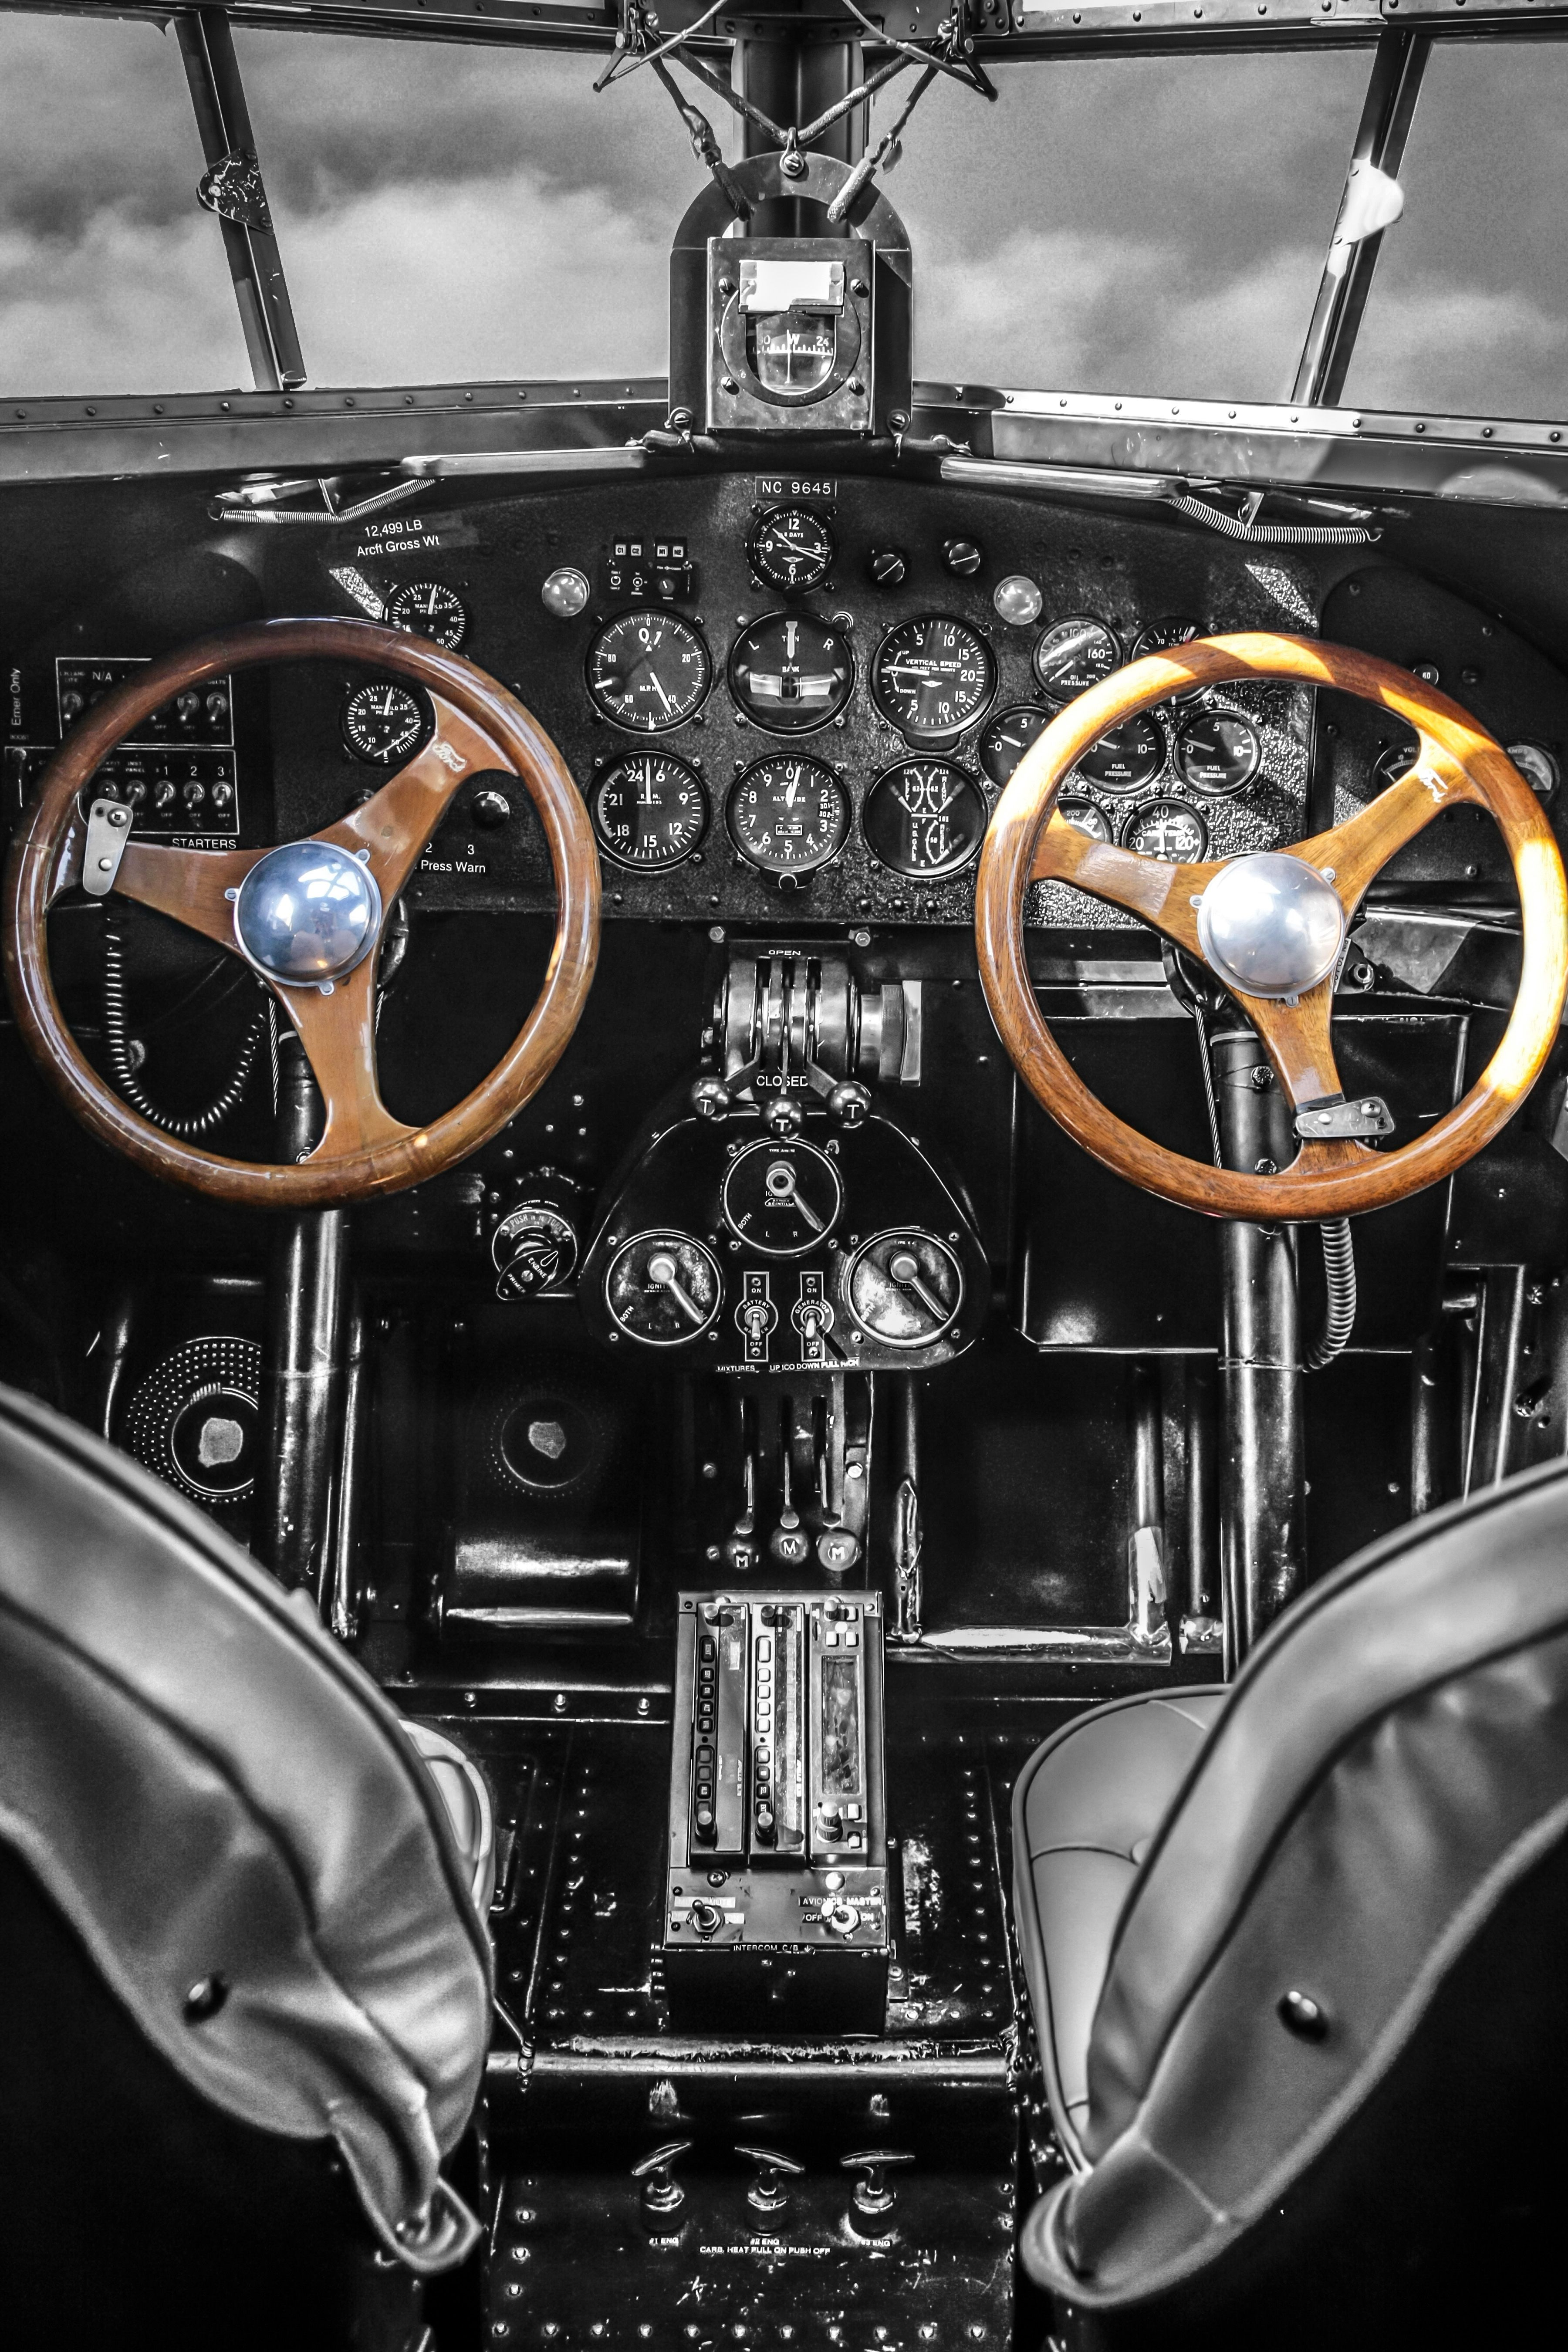 Ford Trimotor Cockpit Vintage Aviation Wall Decor Print